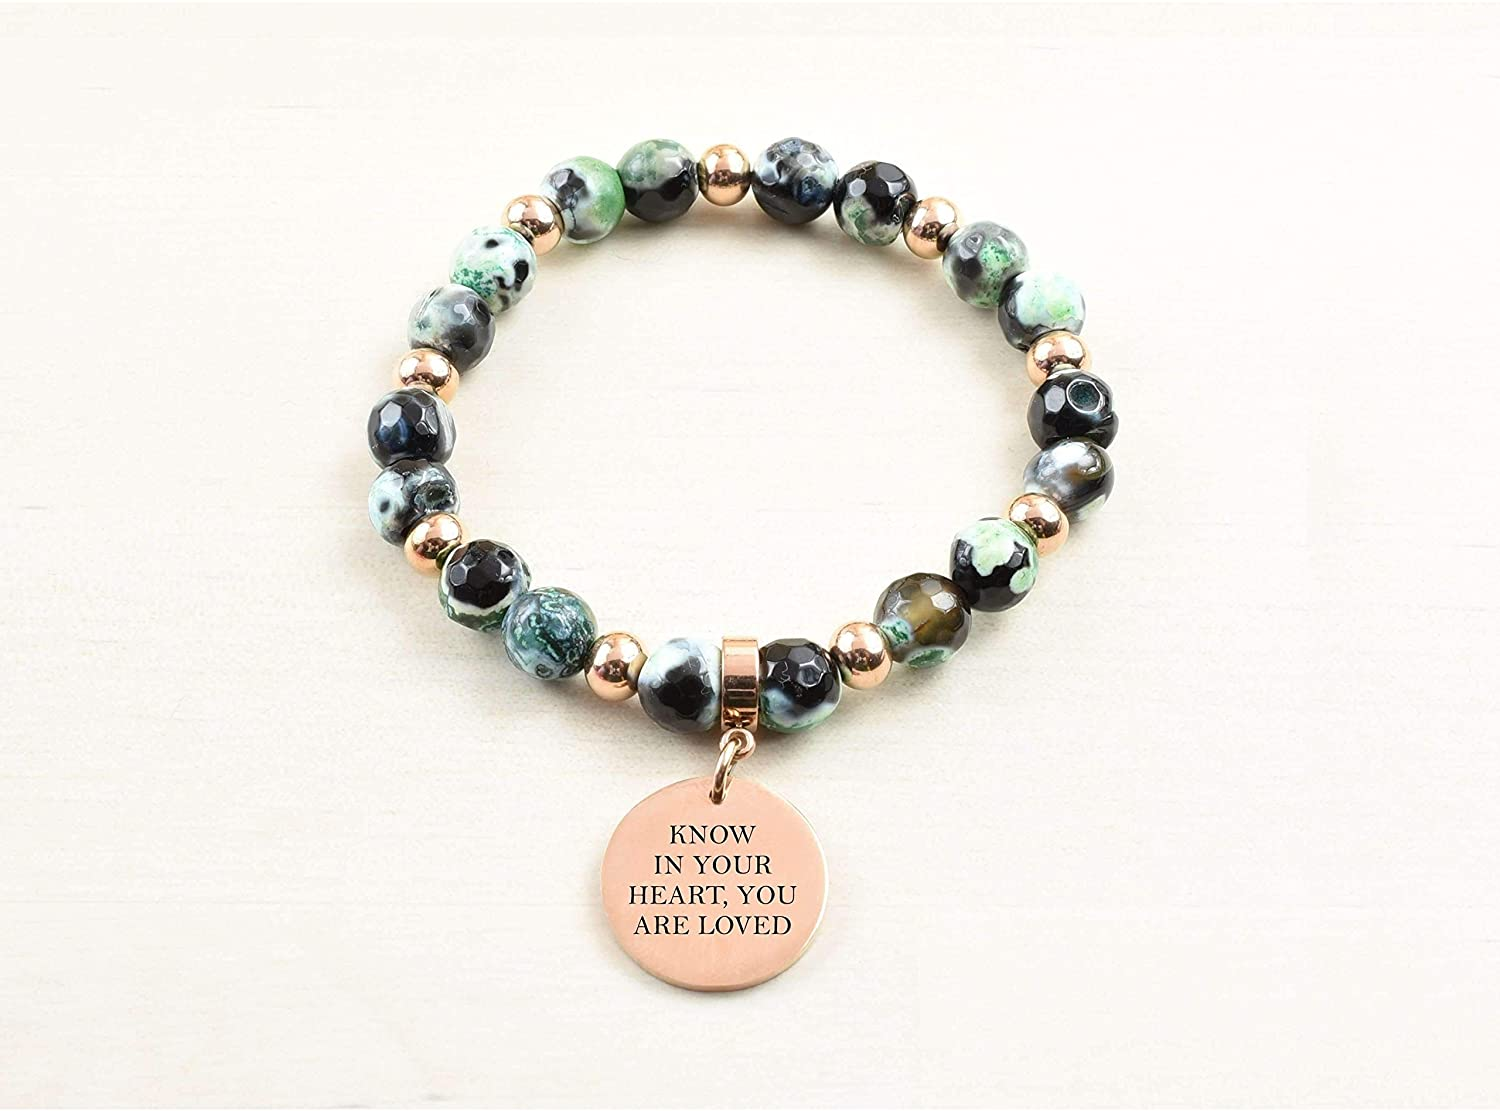 Pink Box Genuine Agate Inspirational Bracelet - Green - Know in Your Heart - Rose Gold -